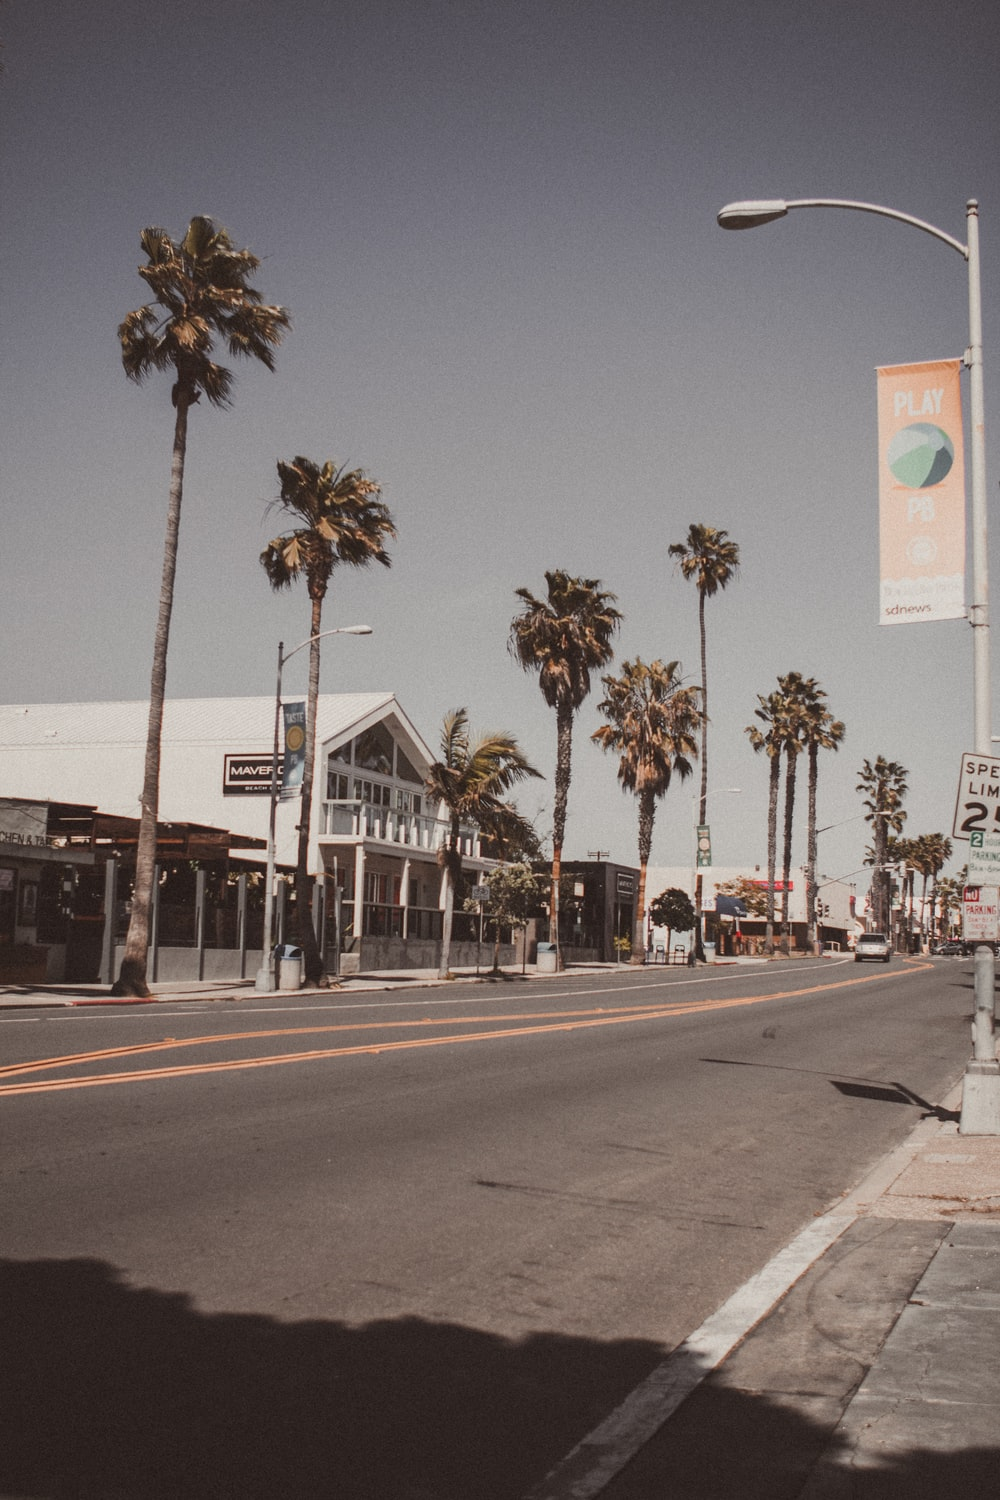 palm trees near road sign during daytime